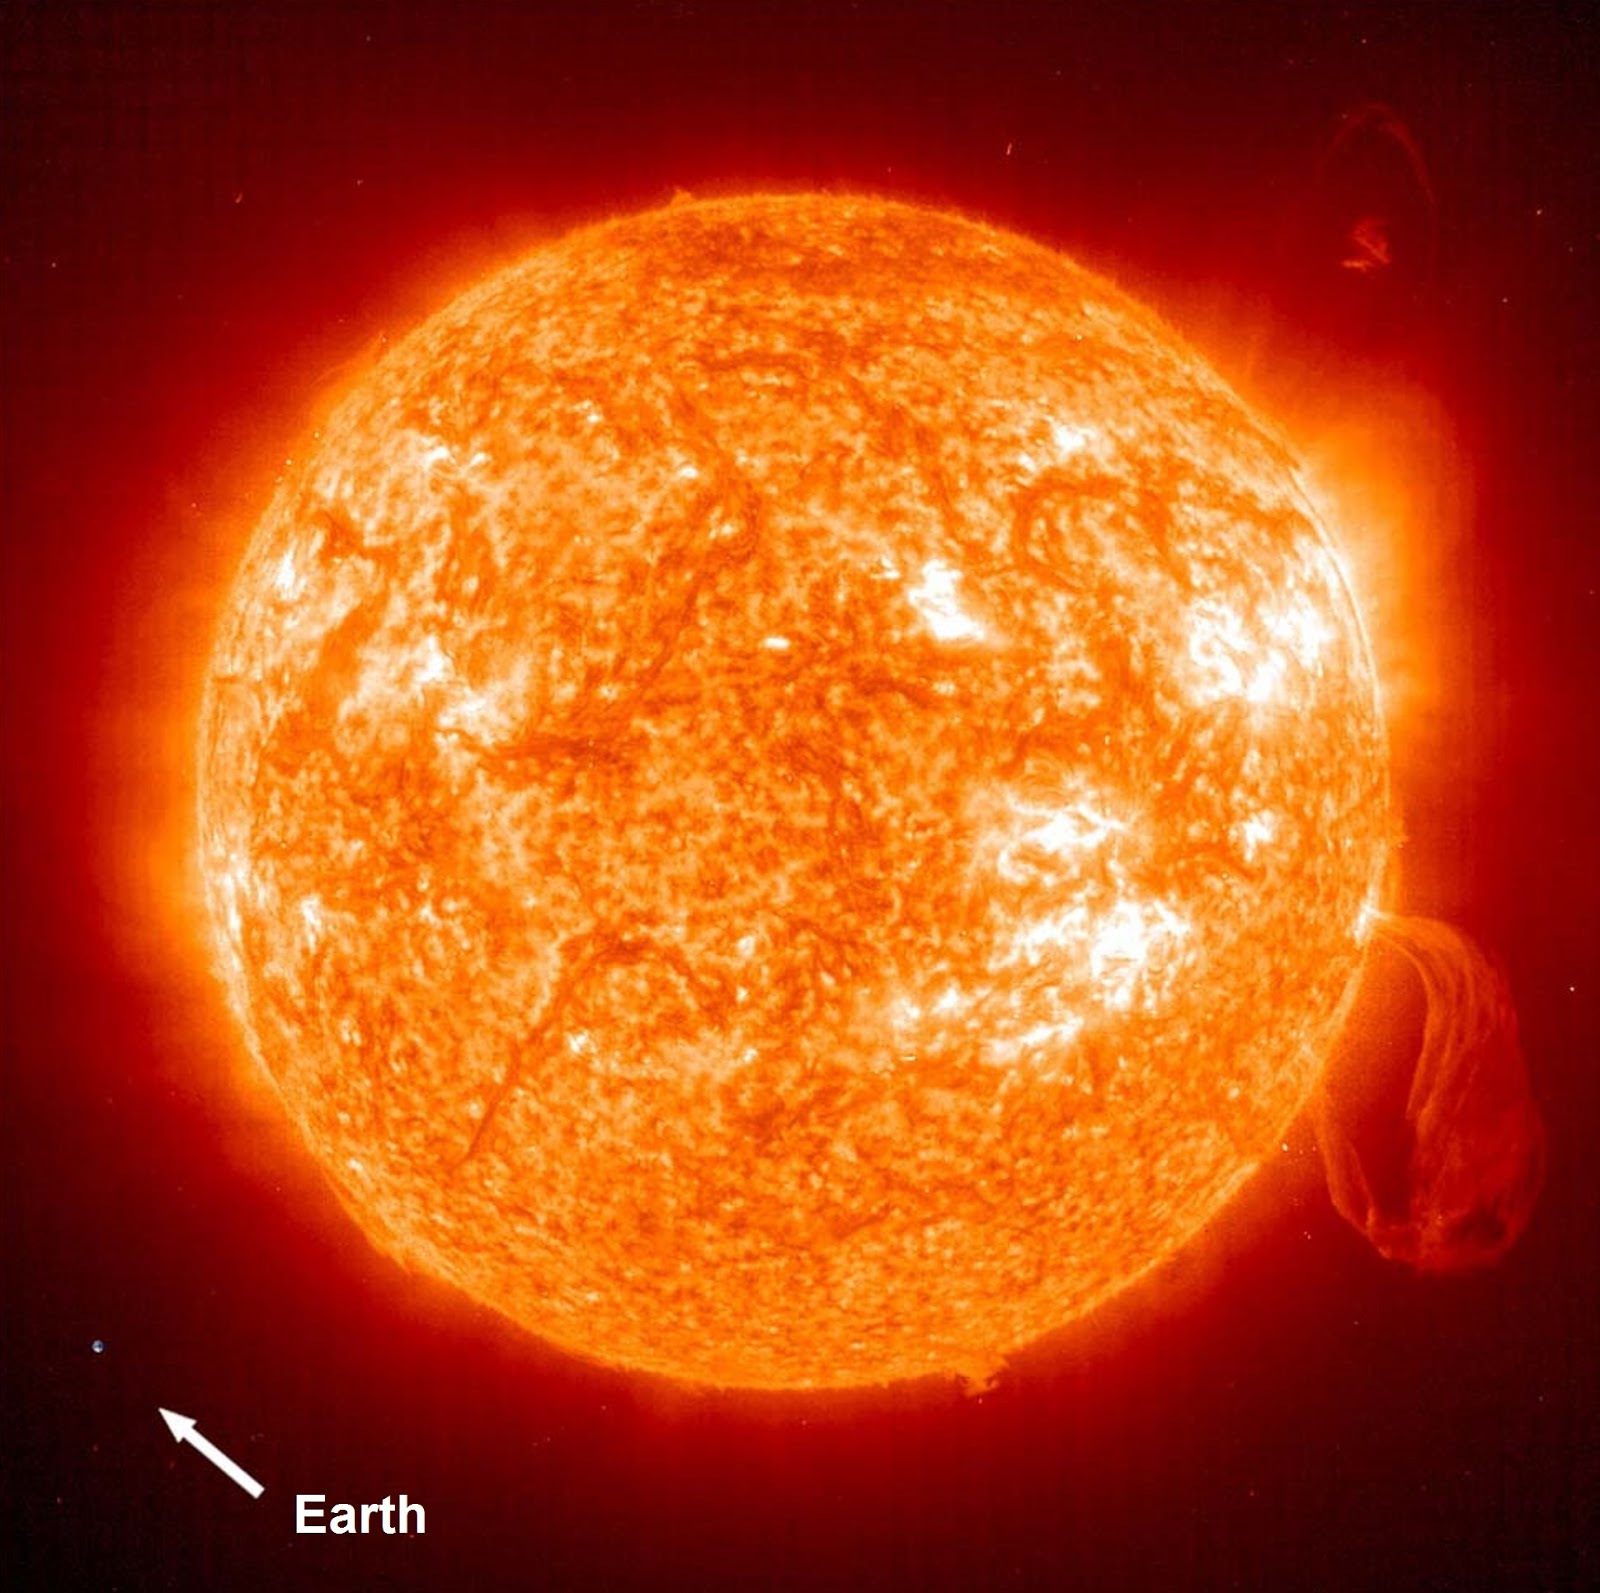 Earth compared to the Sun